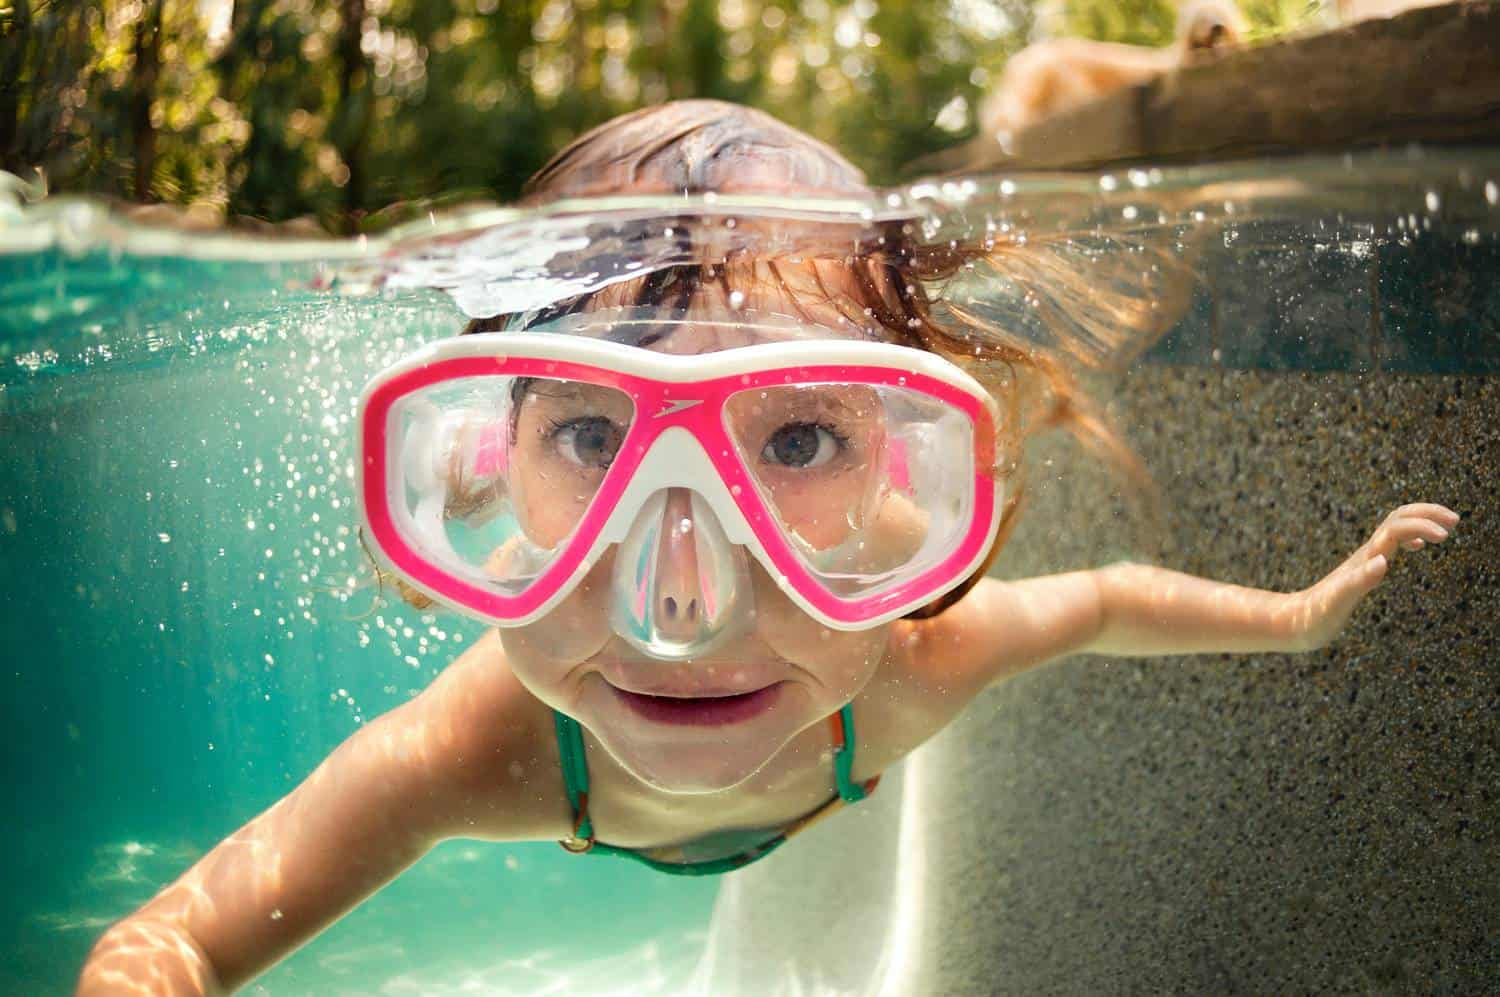 A child in oversized pink goggles swims underwater toward the camera